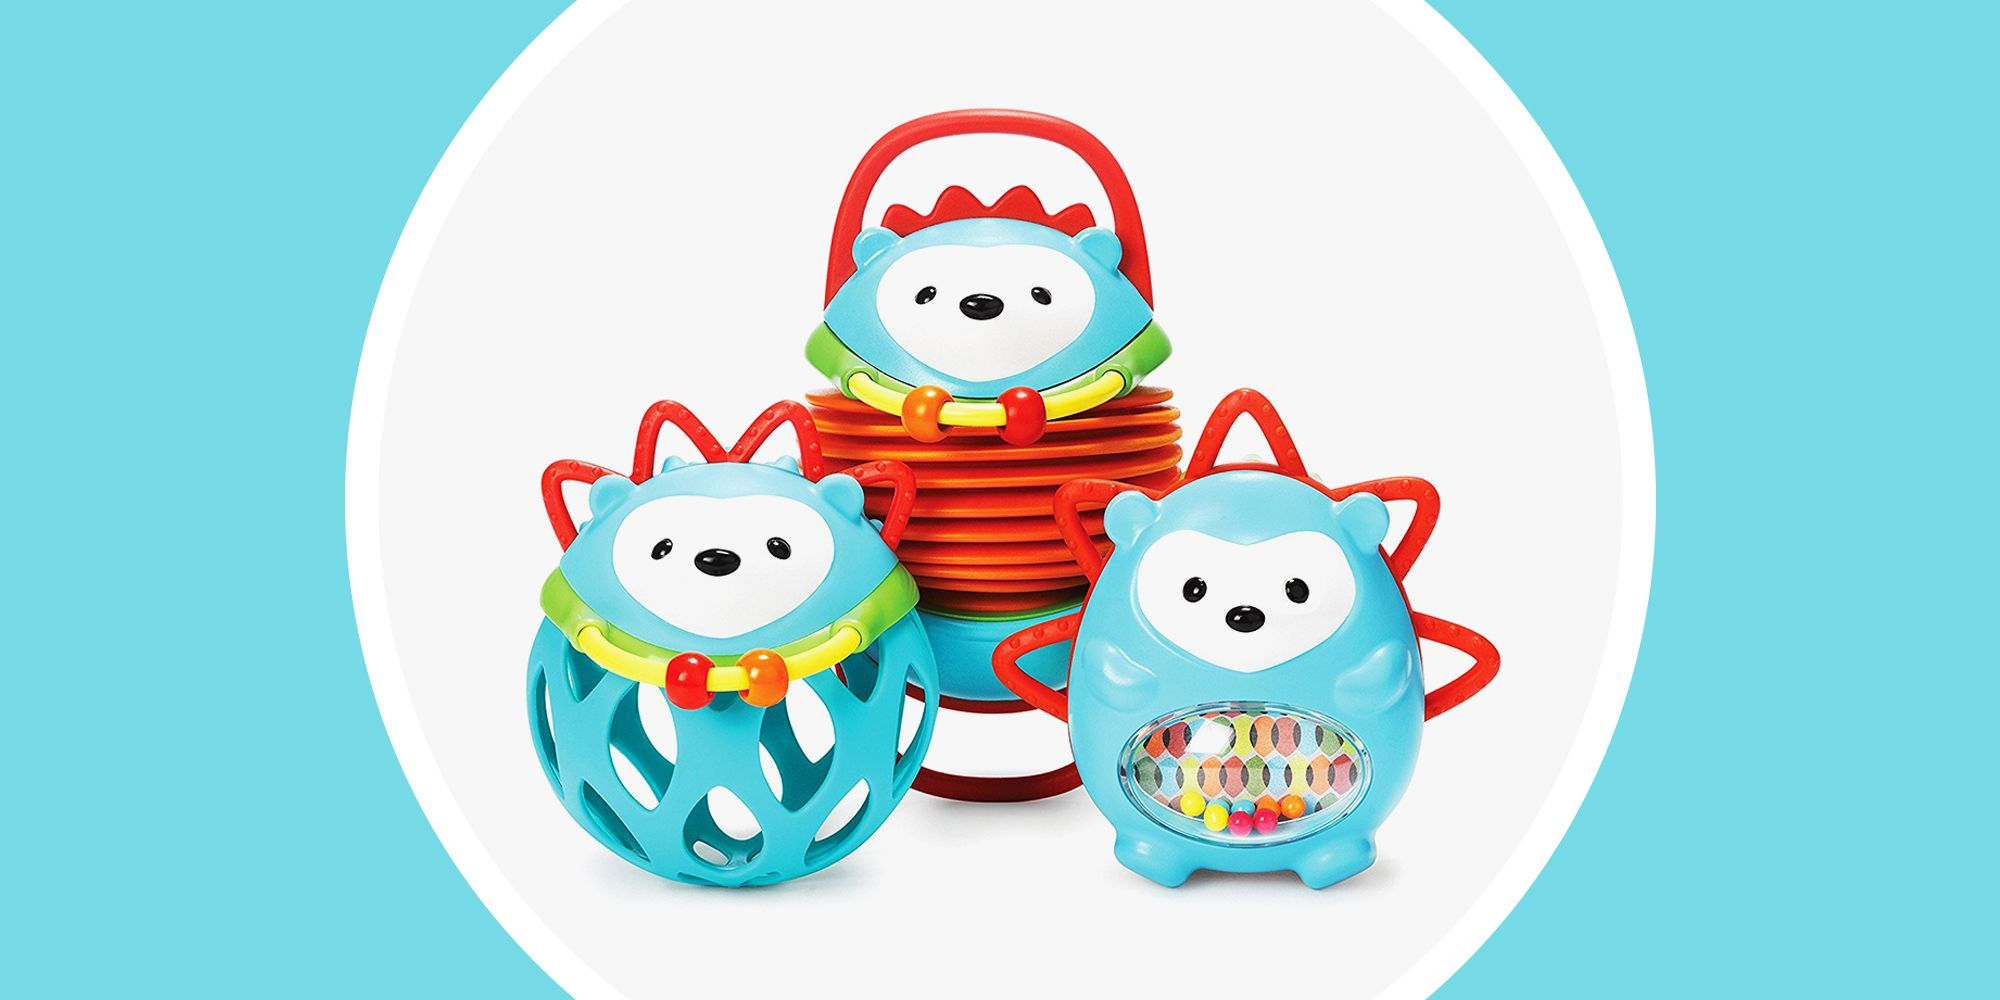 13 Best Baby Rattles in 2018 - Toys and Rattles For Babies